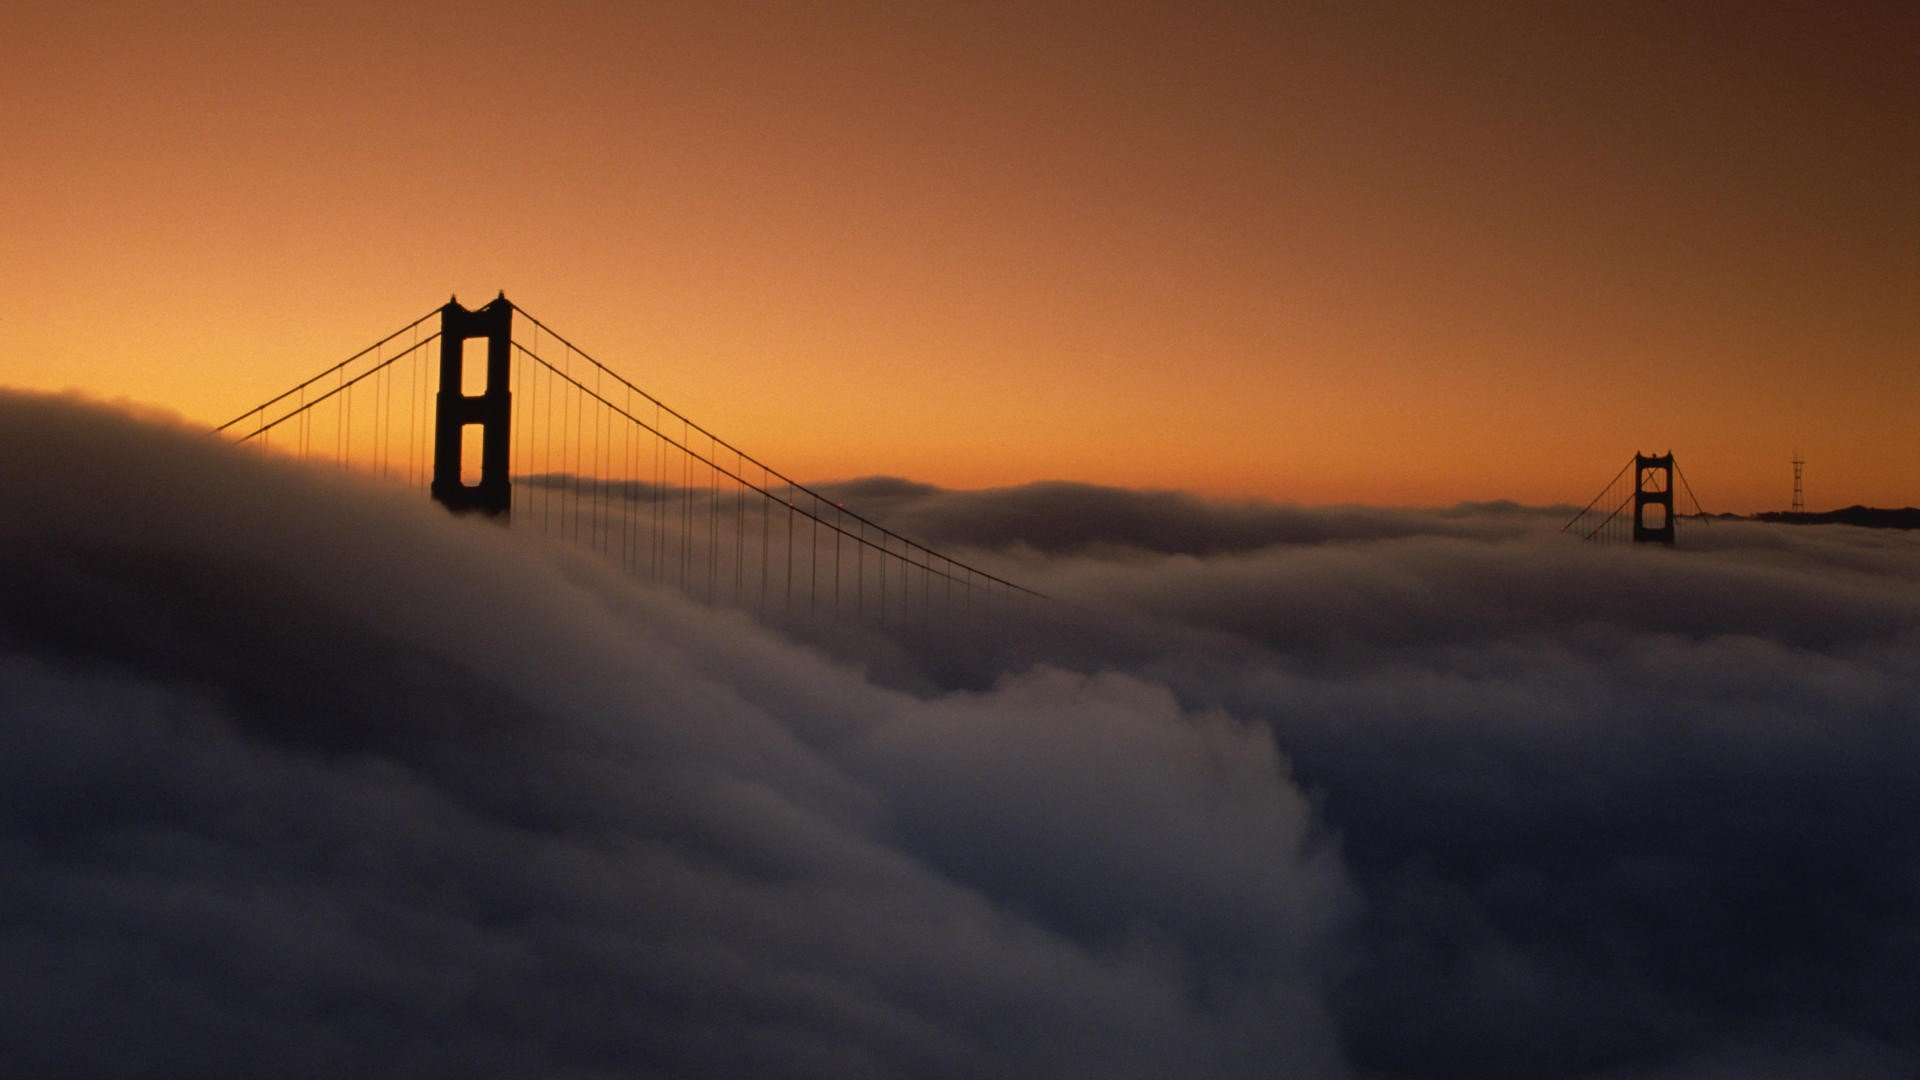 Bridge California San Francisco US Marines Corps wallpaper background 1920x1080